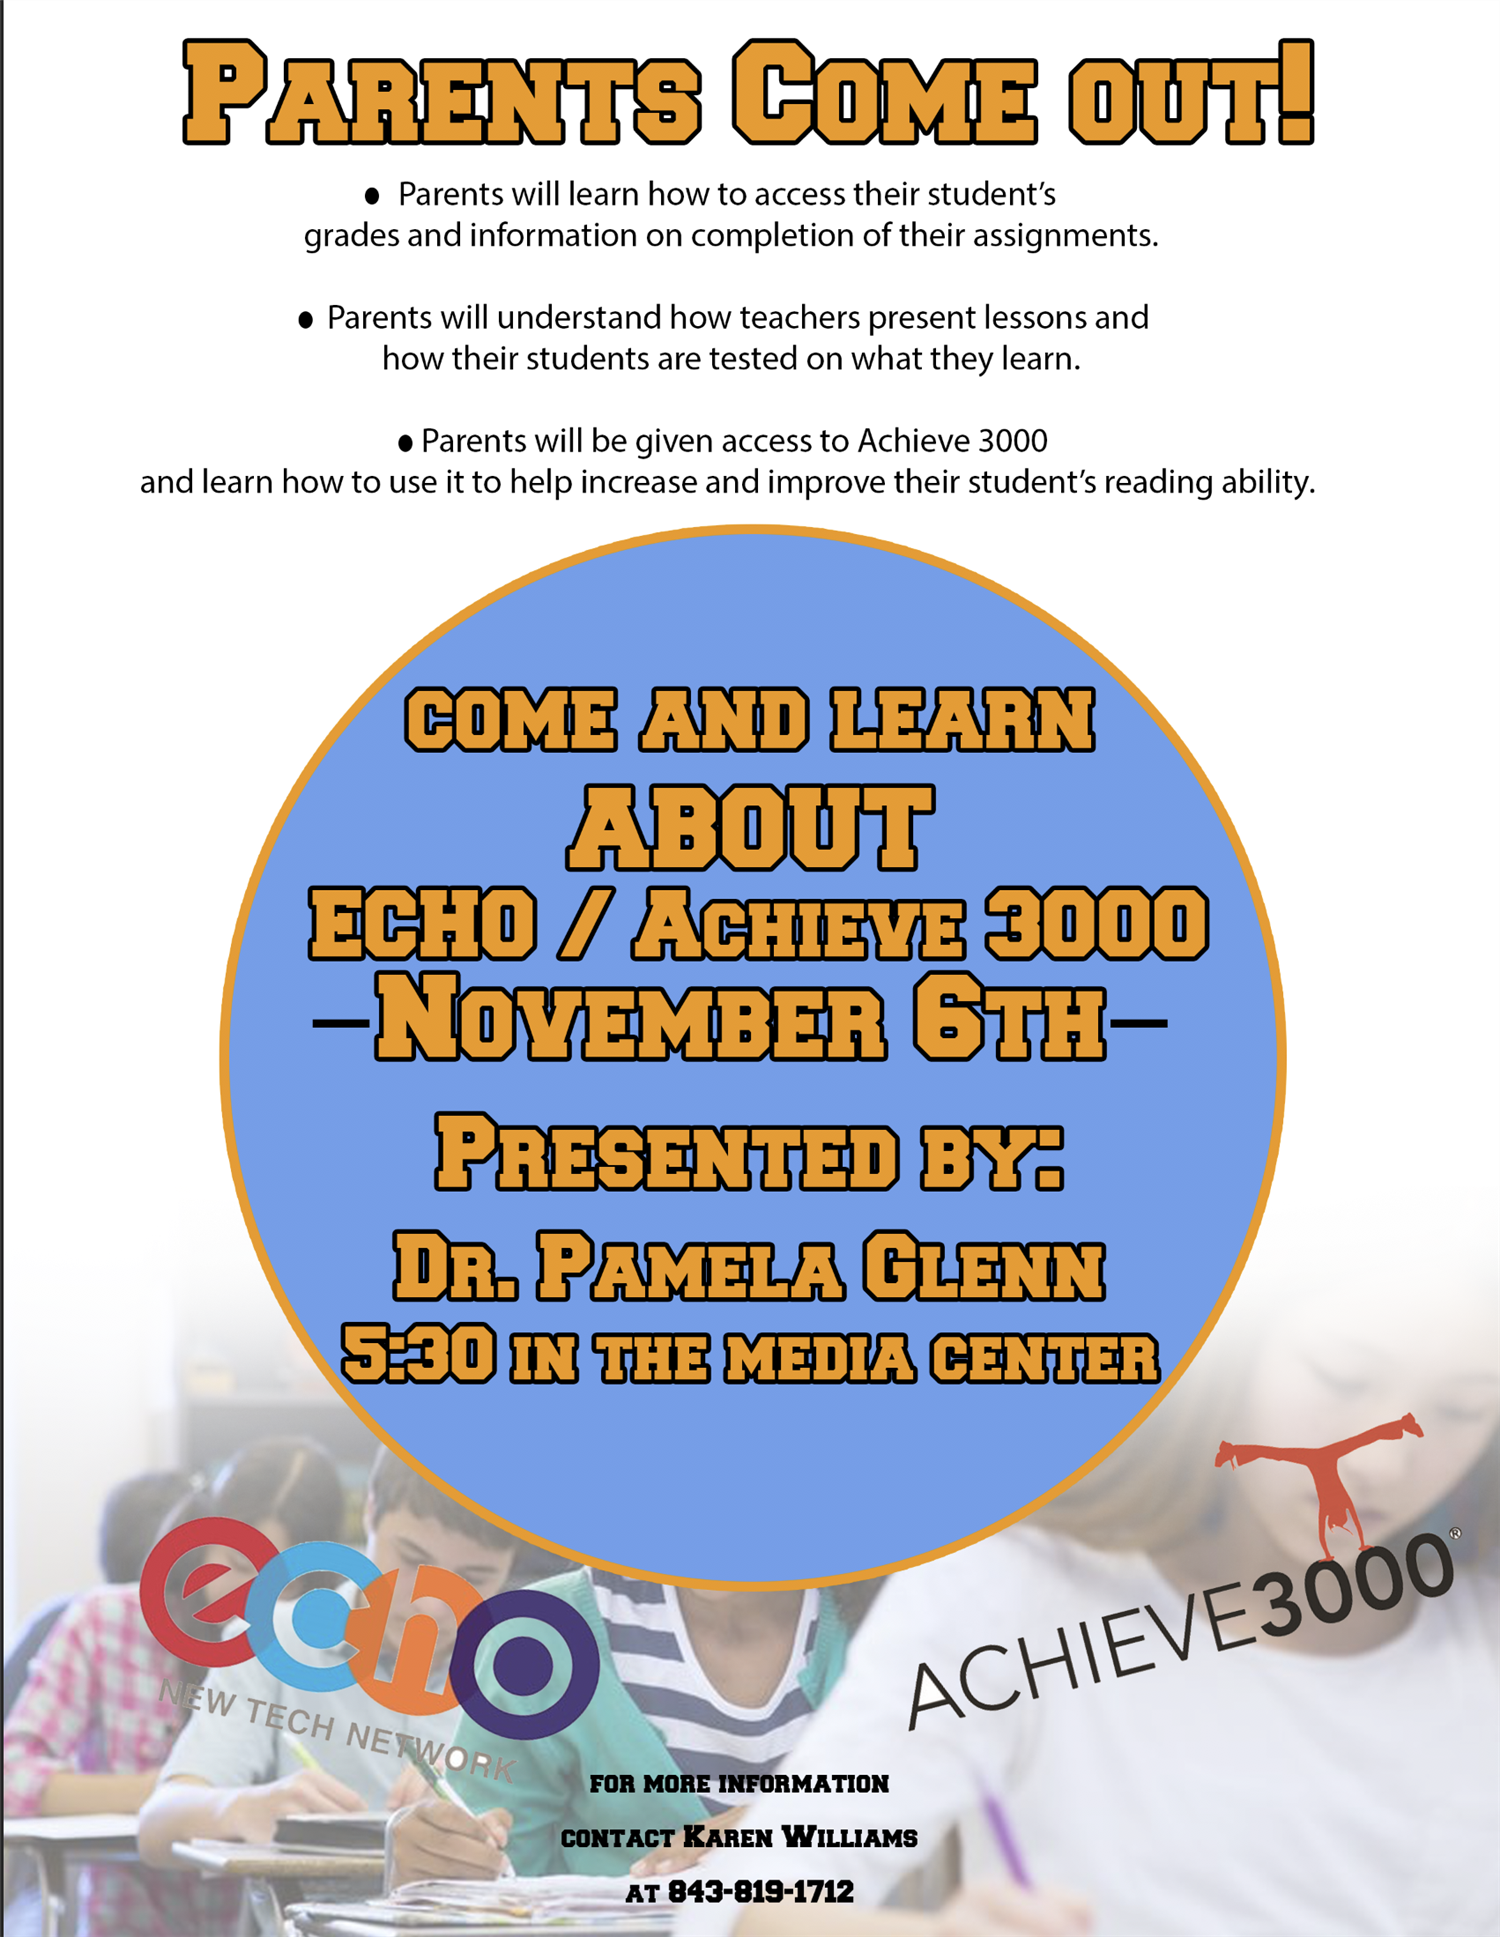 ECHO and ACHIEVE 3000